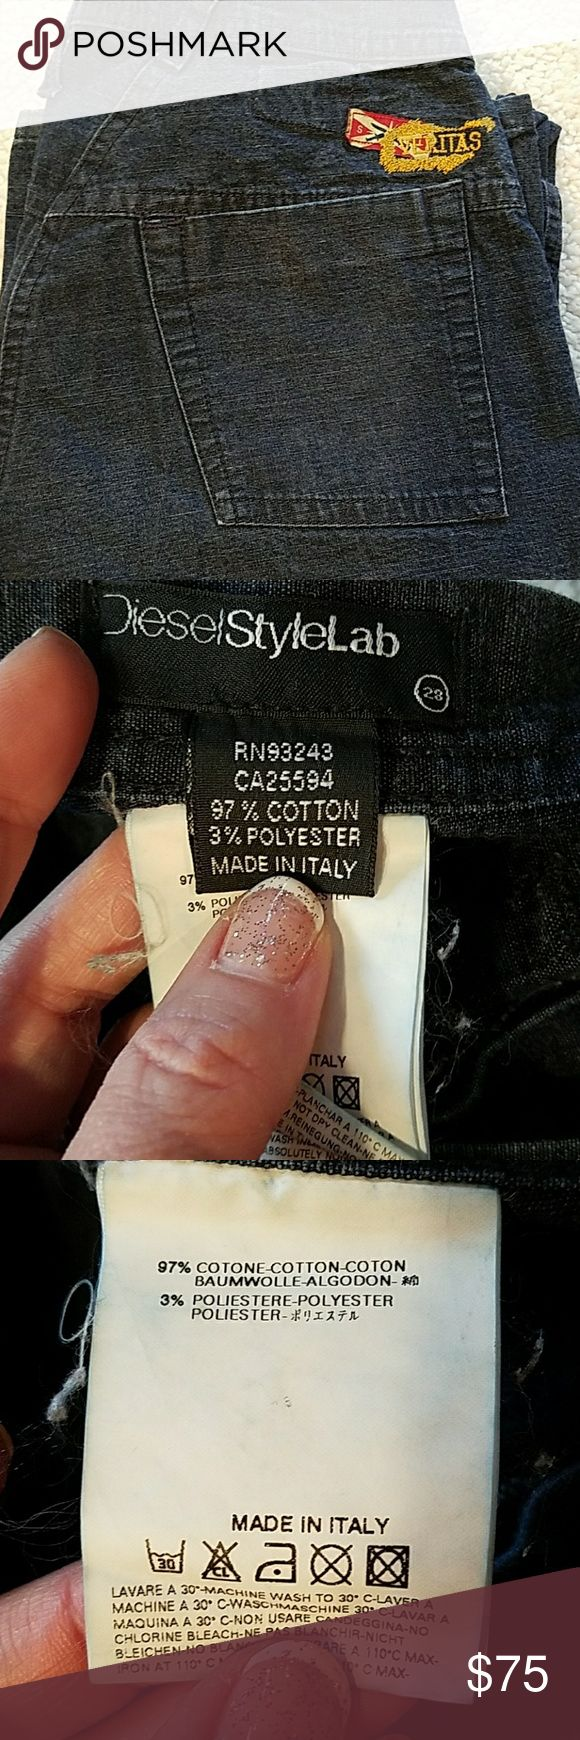 Diesel style lab jailhouse jeans size 28 Waist flat 14 rise 8.5 inseam 32. Freyed hems. These are a discontinued high end line.Price reflects still EUC Diesel Jeans Flare & Wide Leg